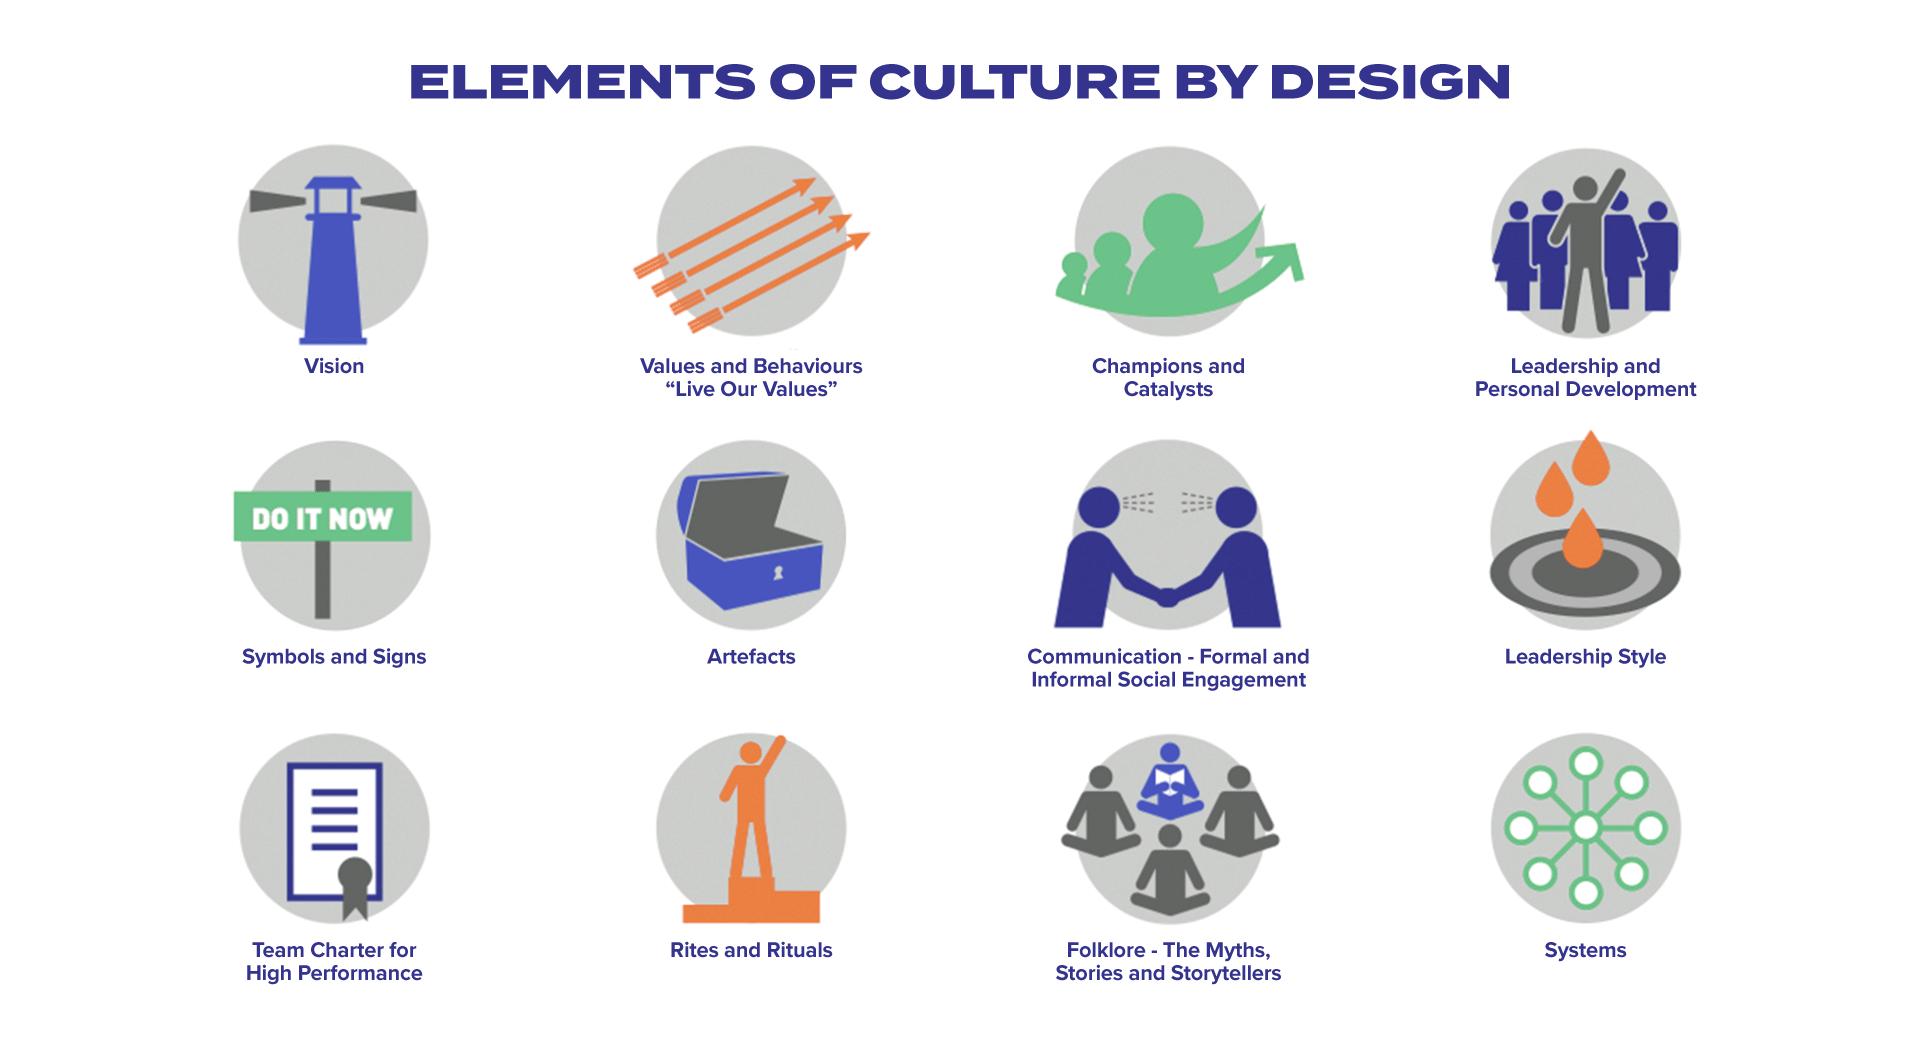 Elements of Culture by Design Infographic